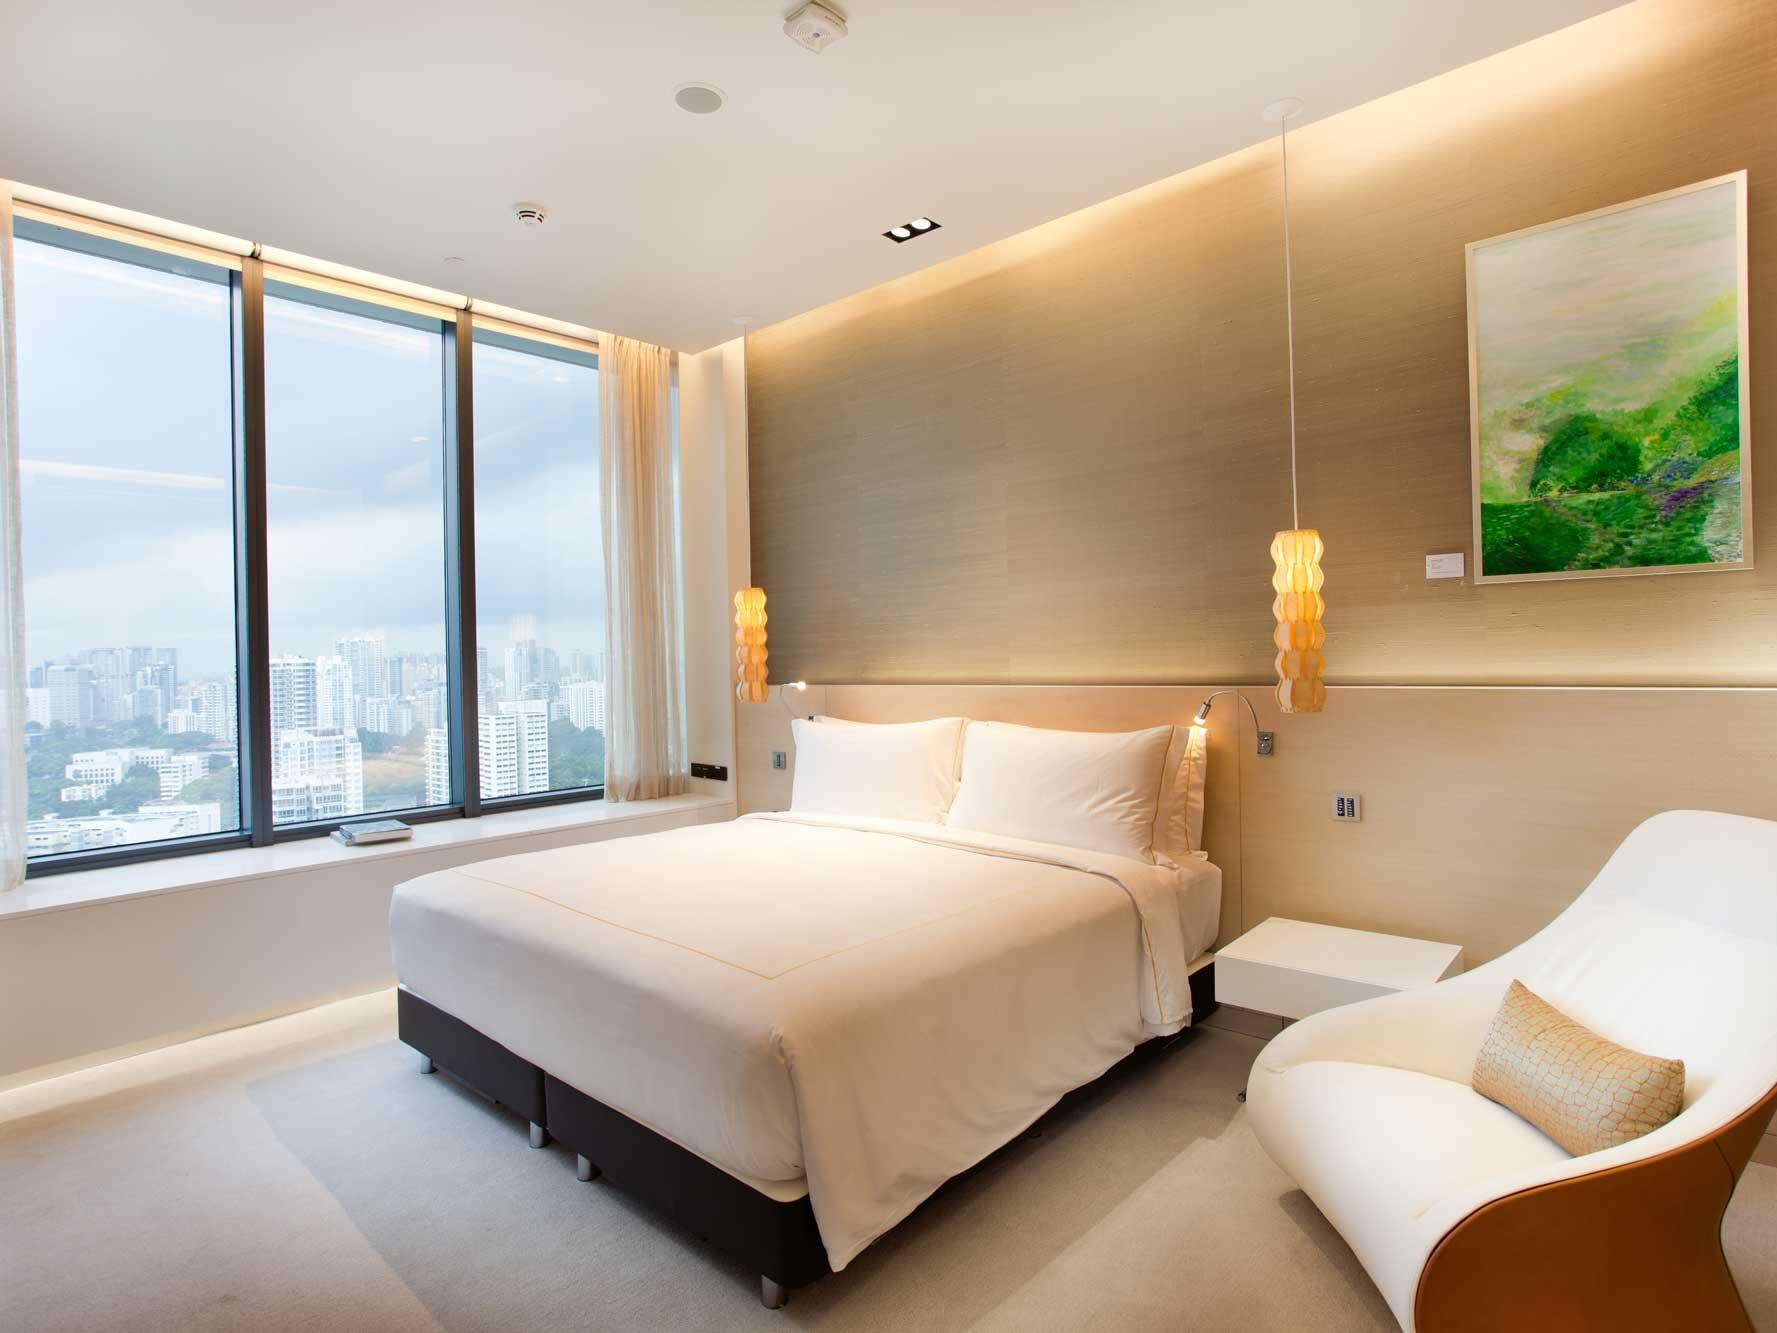 Interior of Peony standard bedroom at one farrer hotel